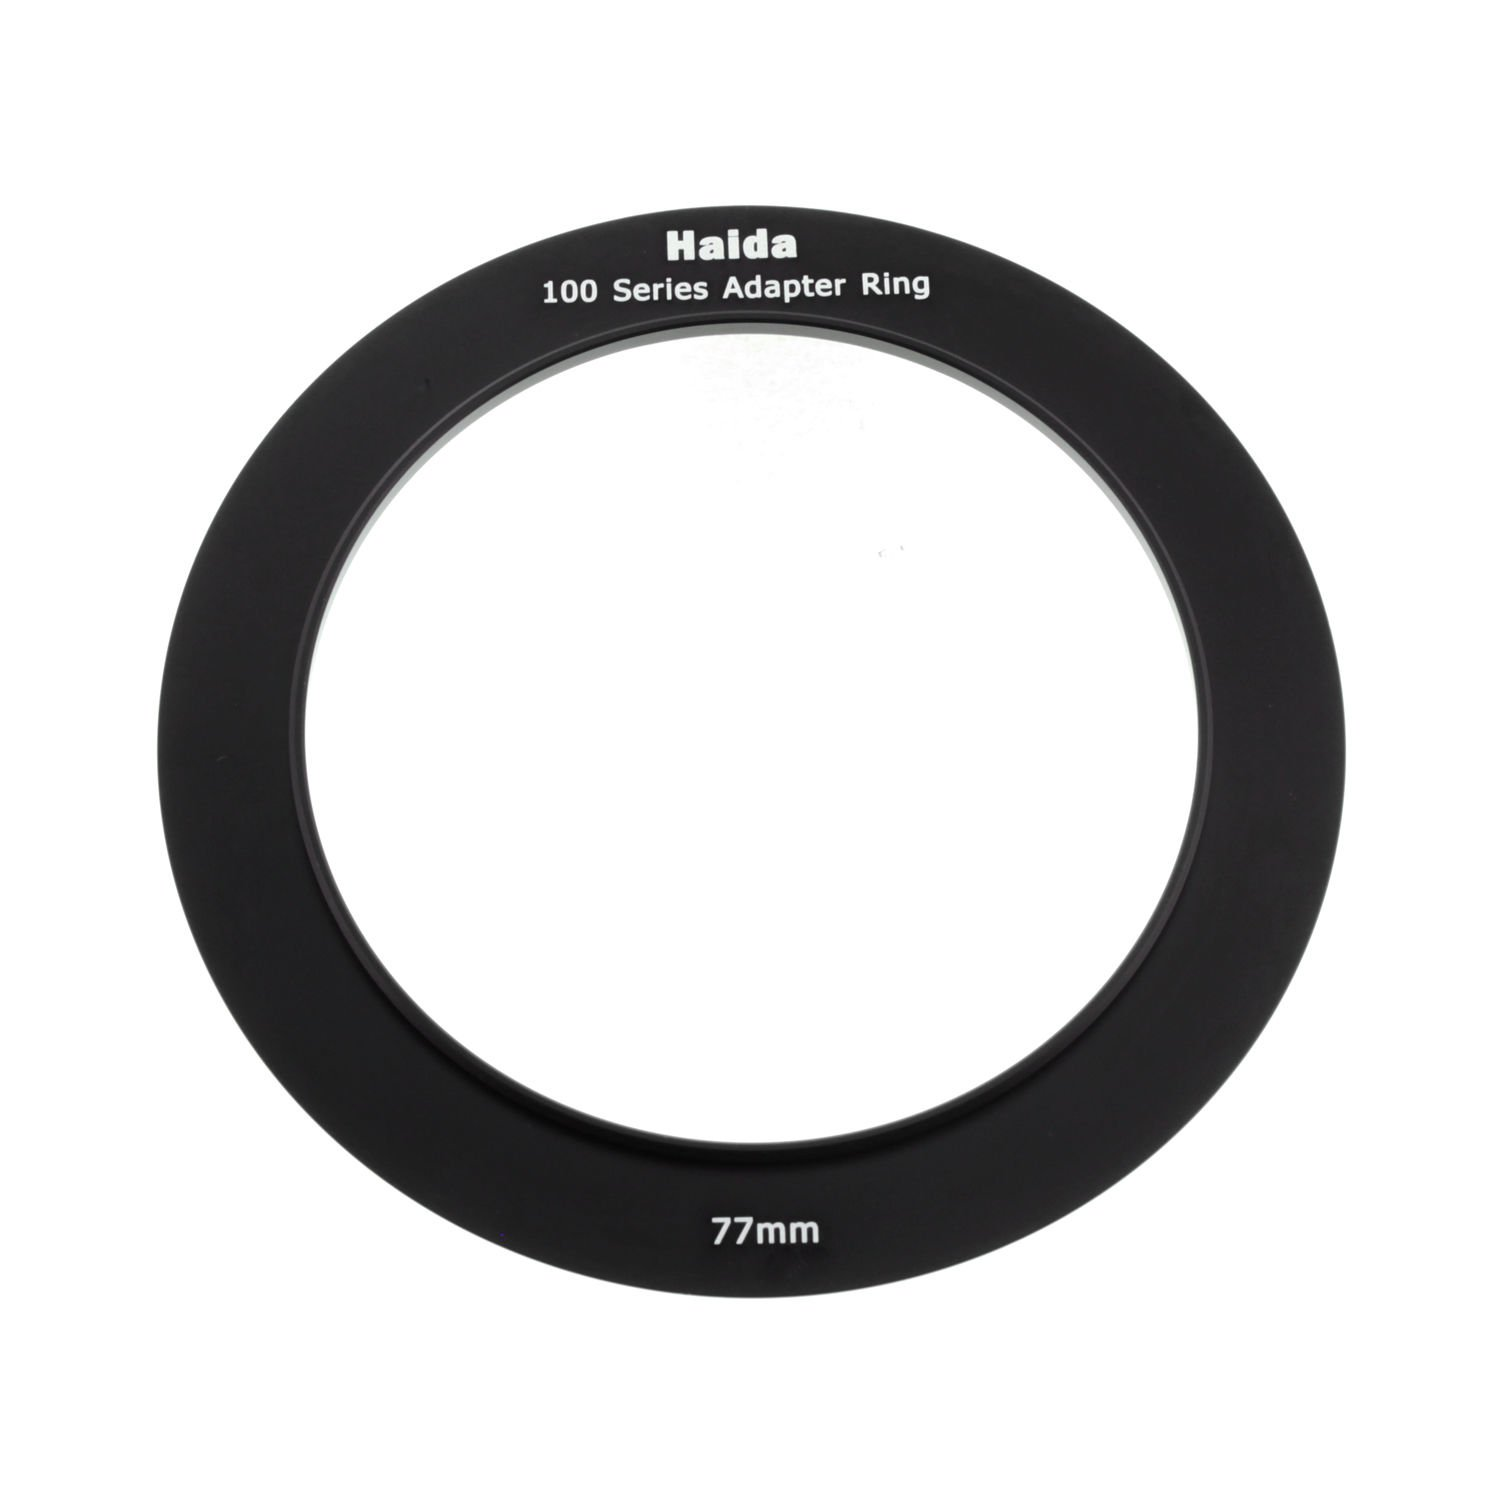 Haida 77mm Metal Adapter ring for 100 Series Filter Holder fits 77 Lens / Lenses by Haida